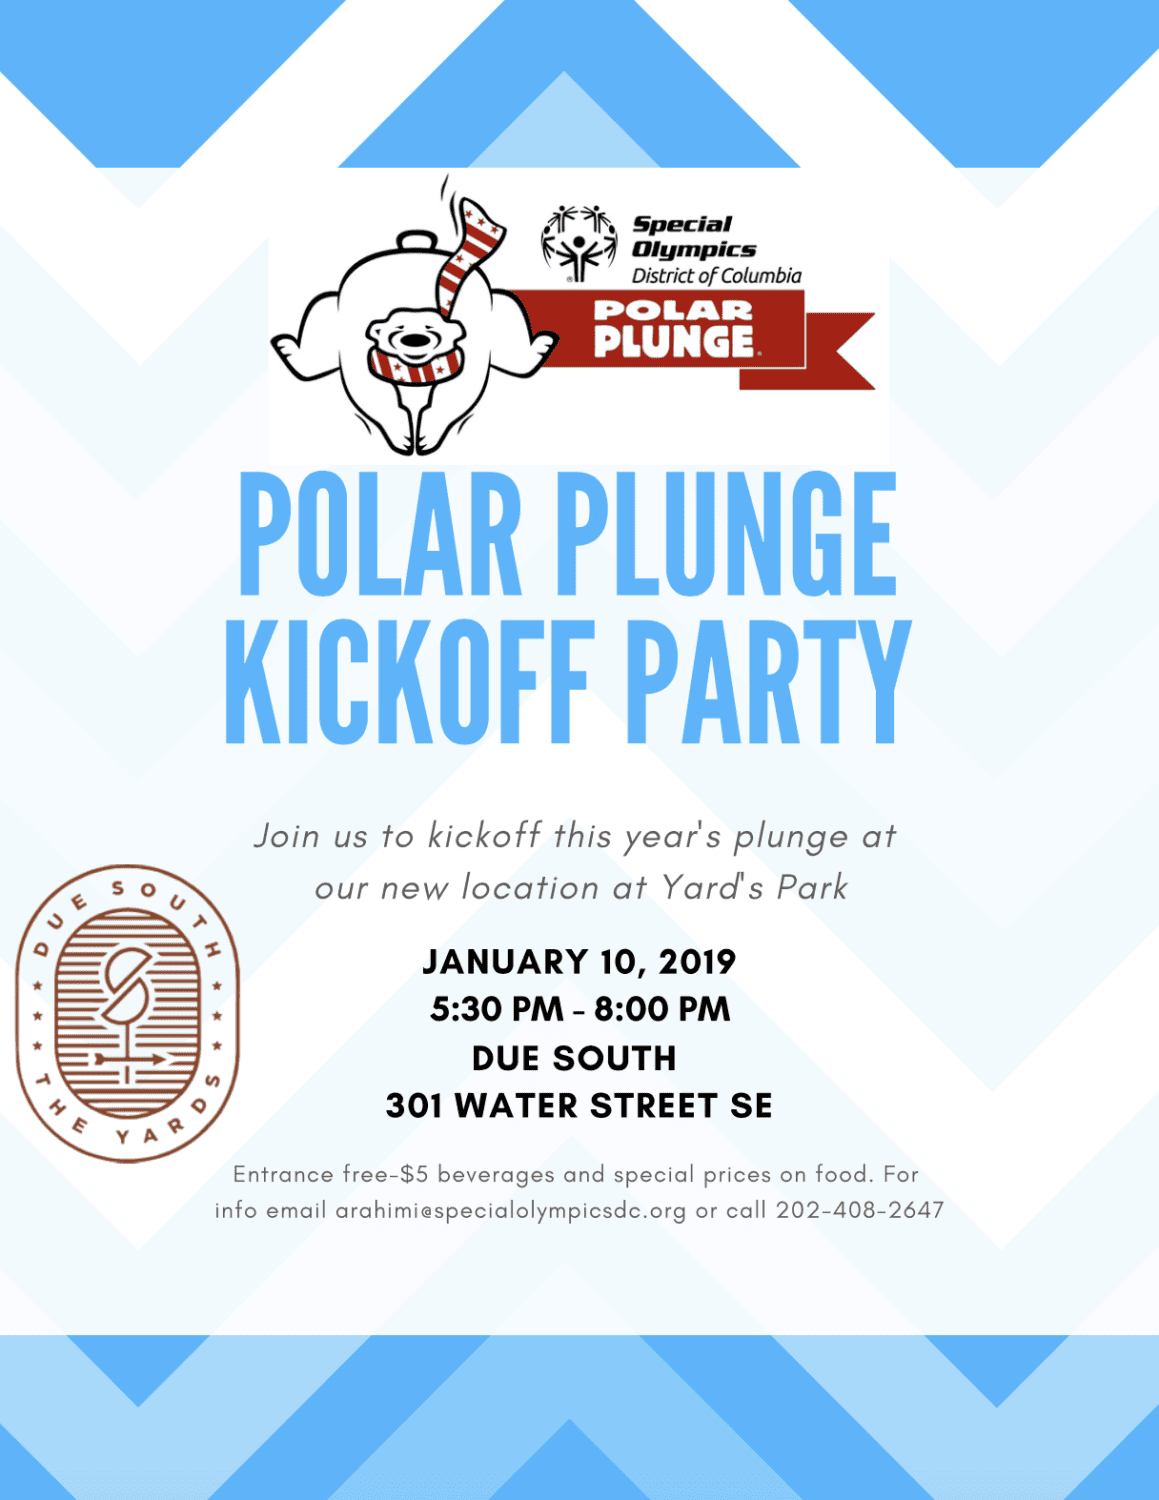 Flyer for Polar Plunge kickoff party